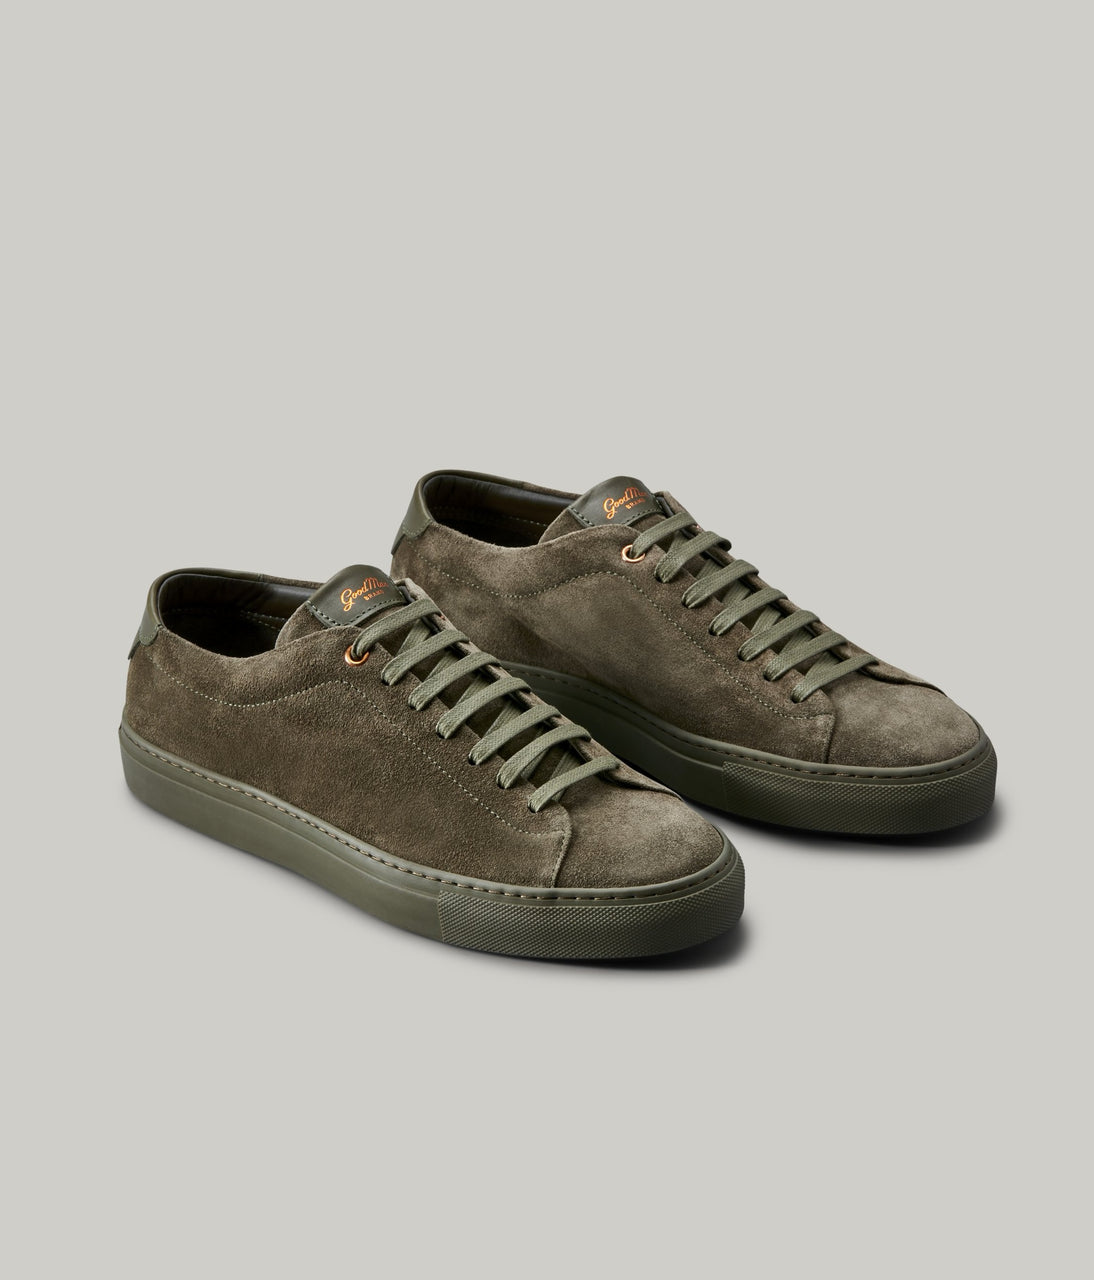 Edge Mono Lo-Top Sneaker in Suede - Olive - Good Man Brand - Edge Mono Lo-Top Sneaker in Suede - Olive